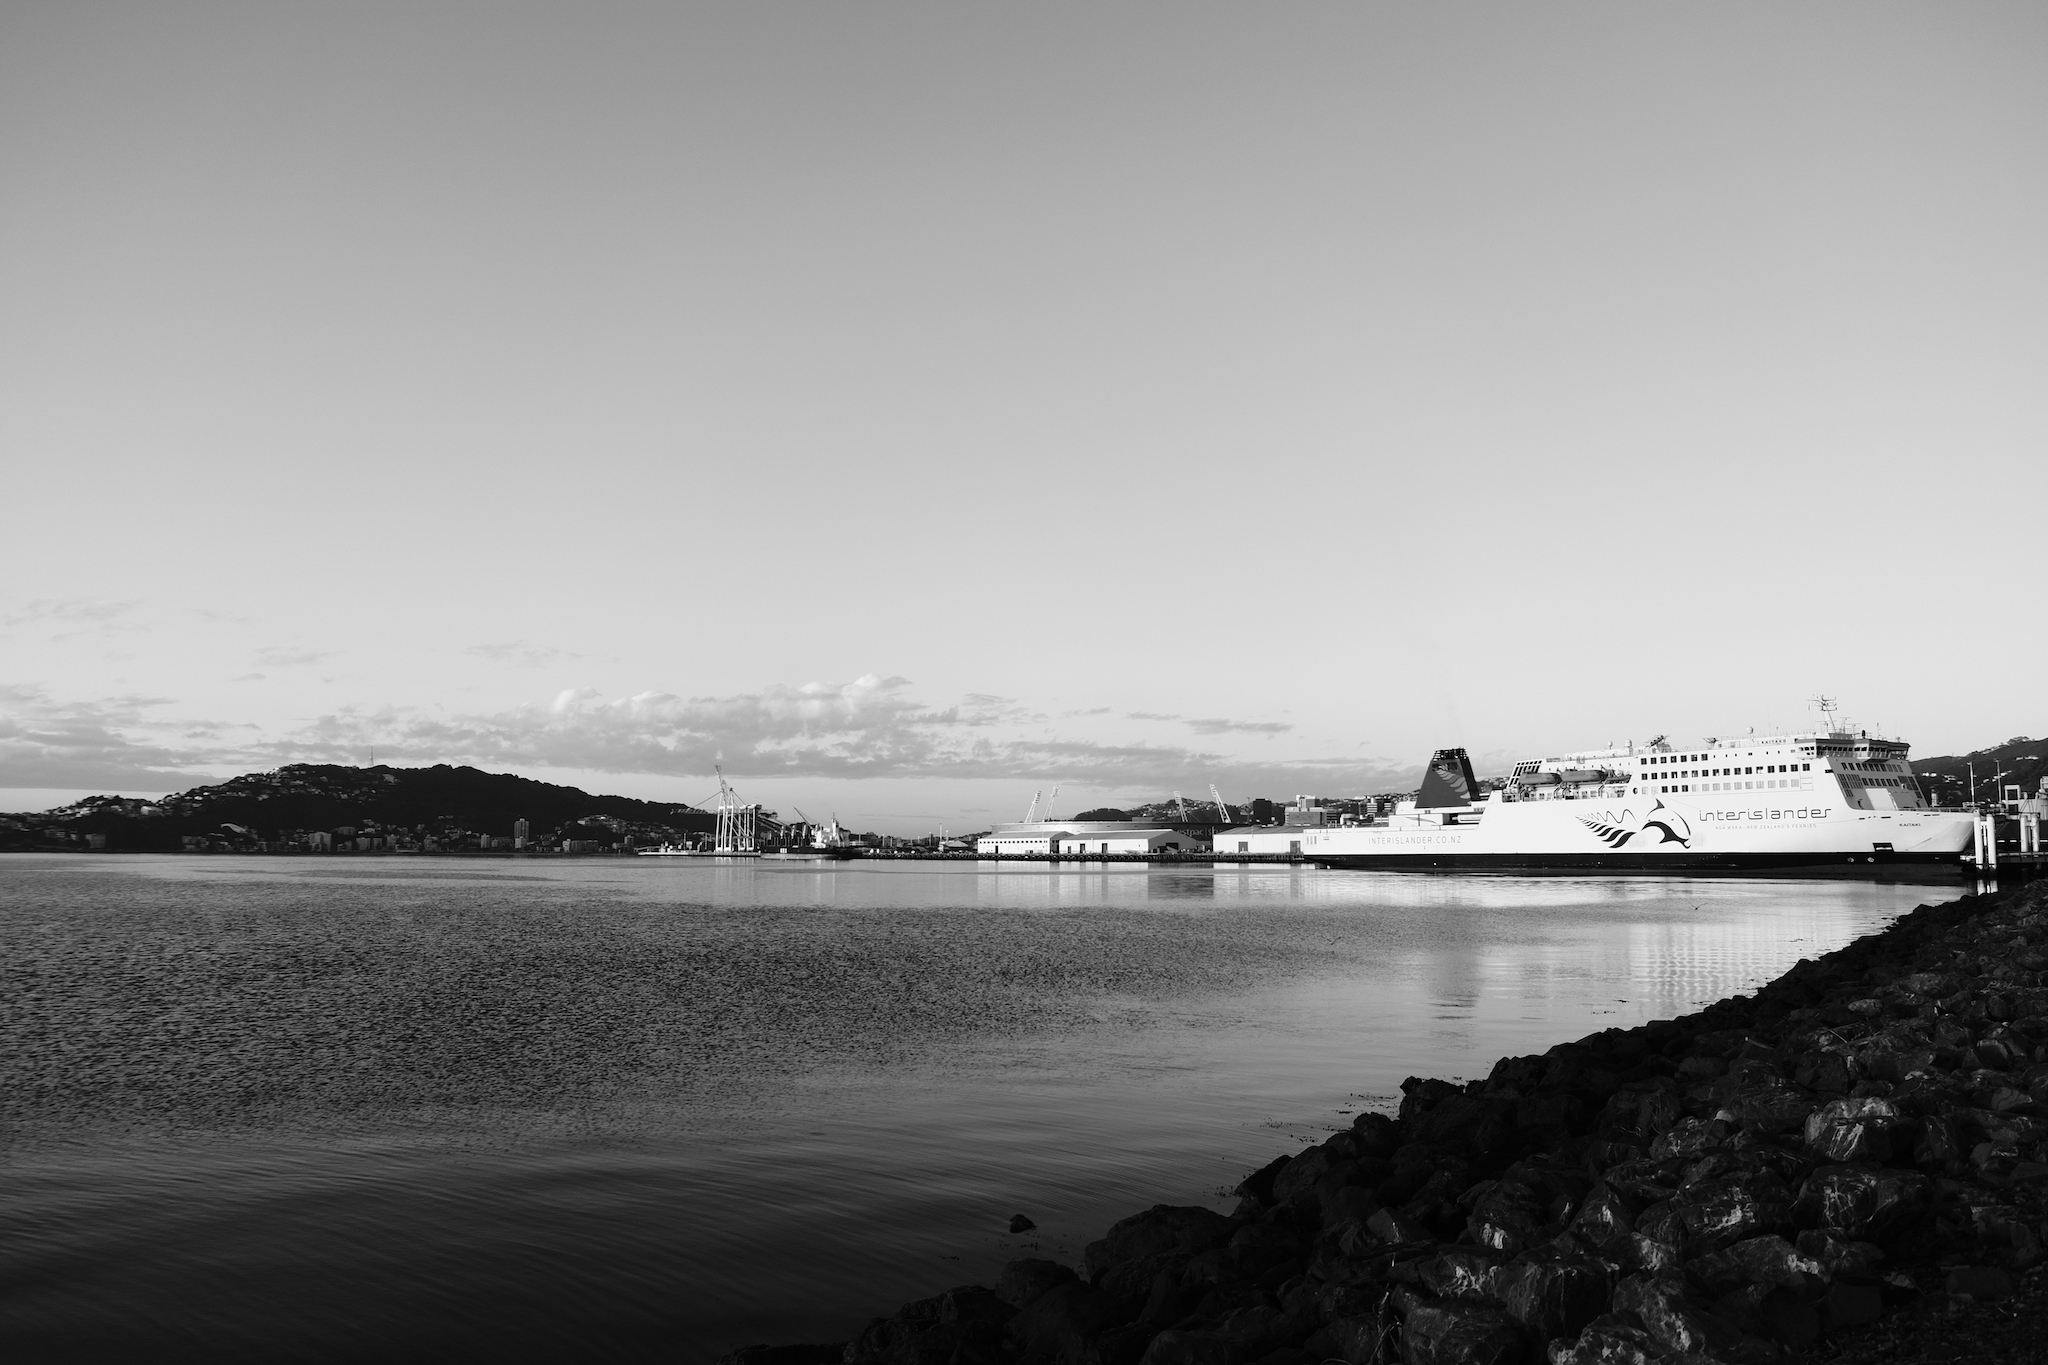 Our Ferry, the Kaitaki, at berth in Wellington